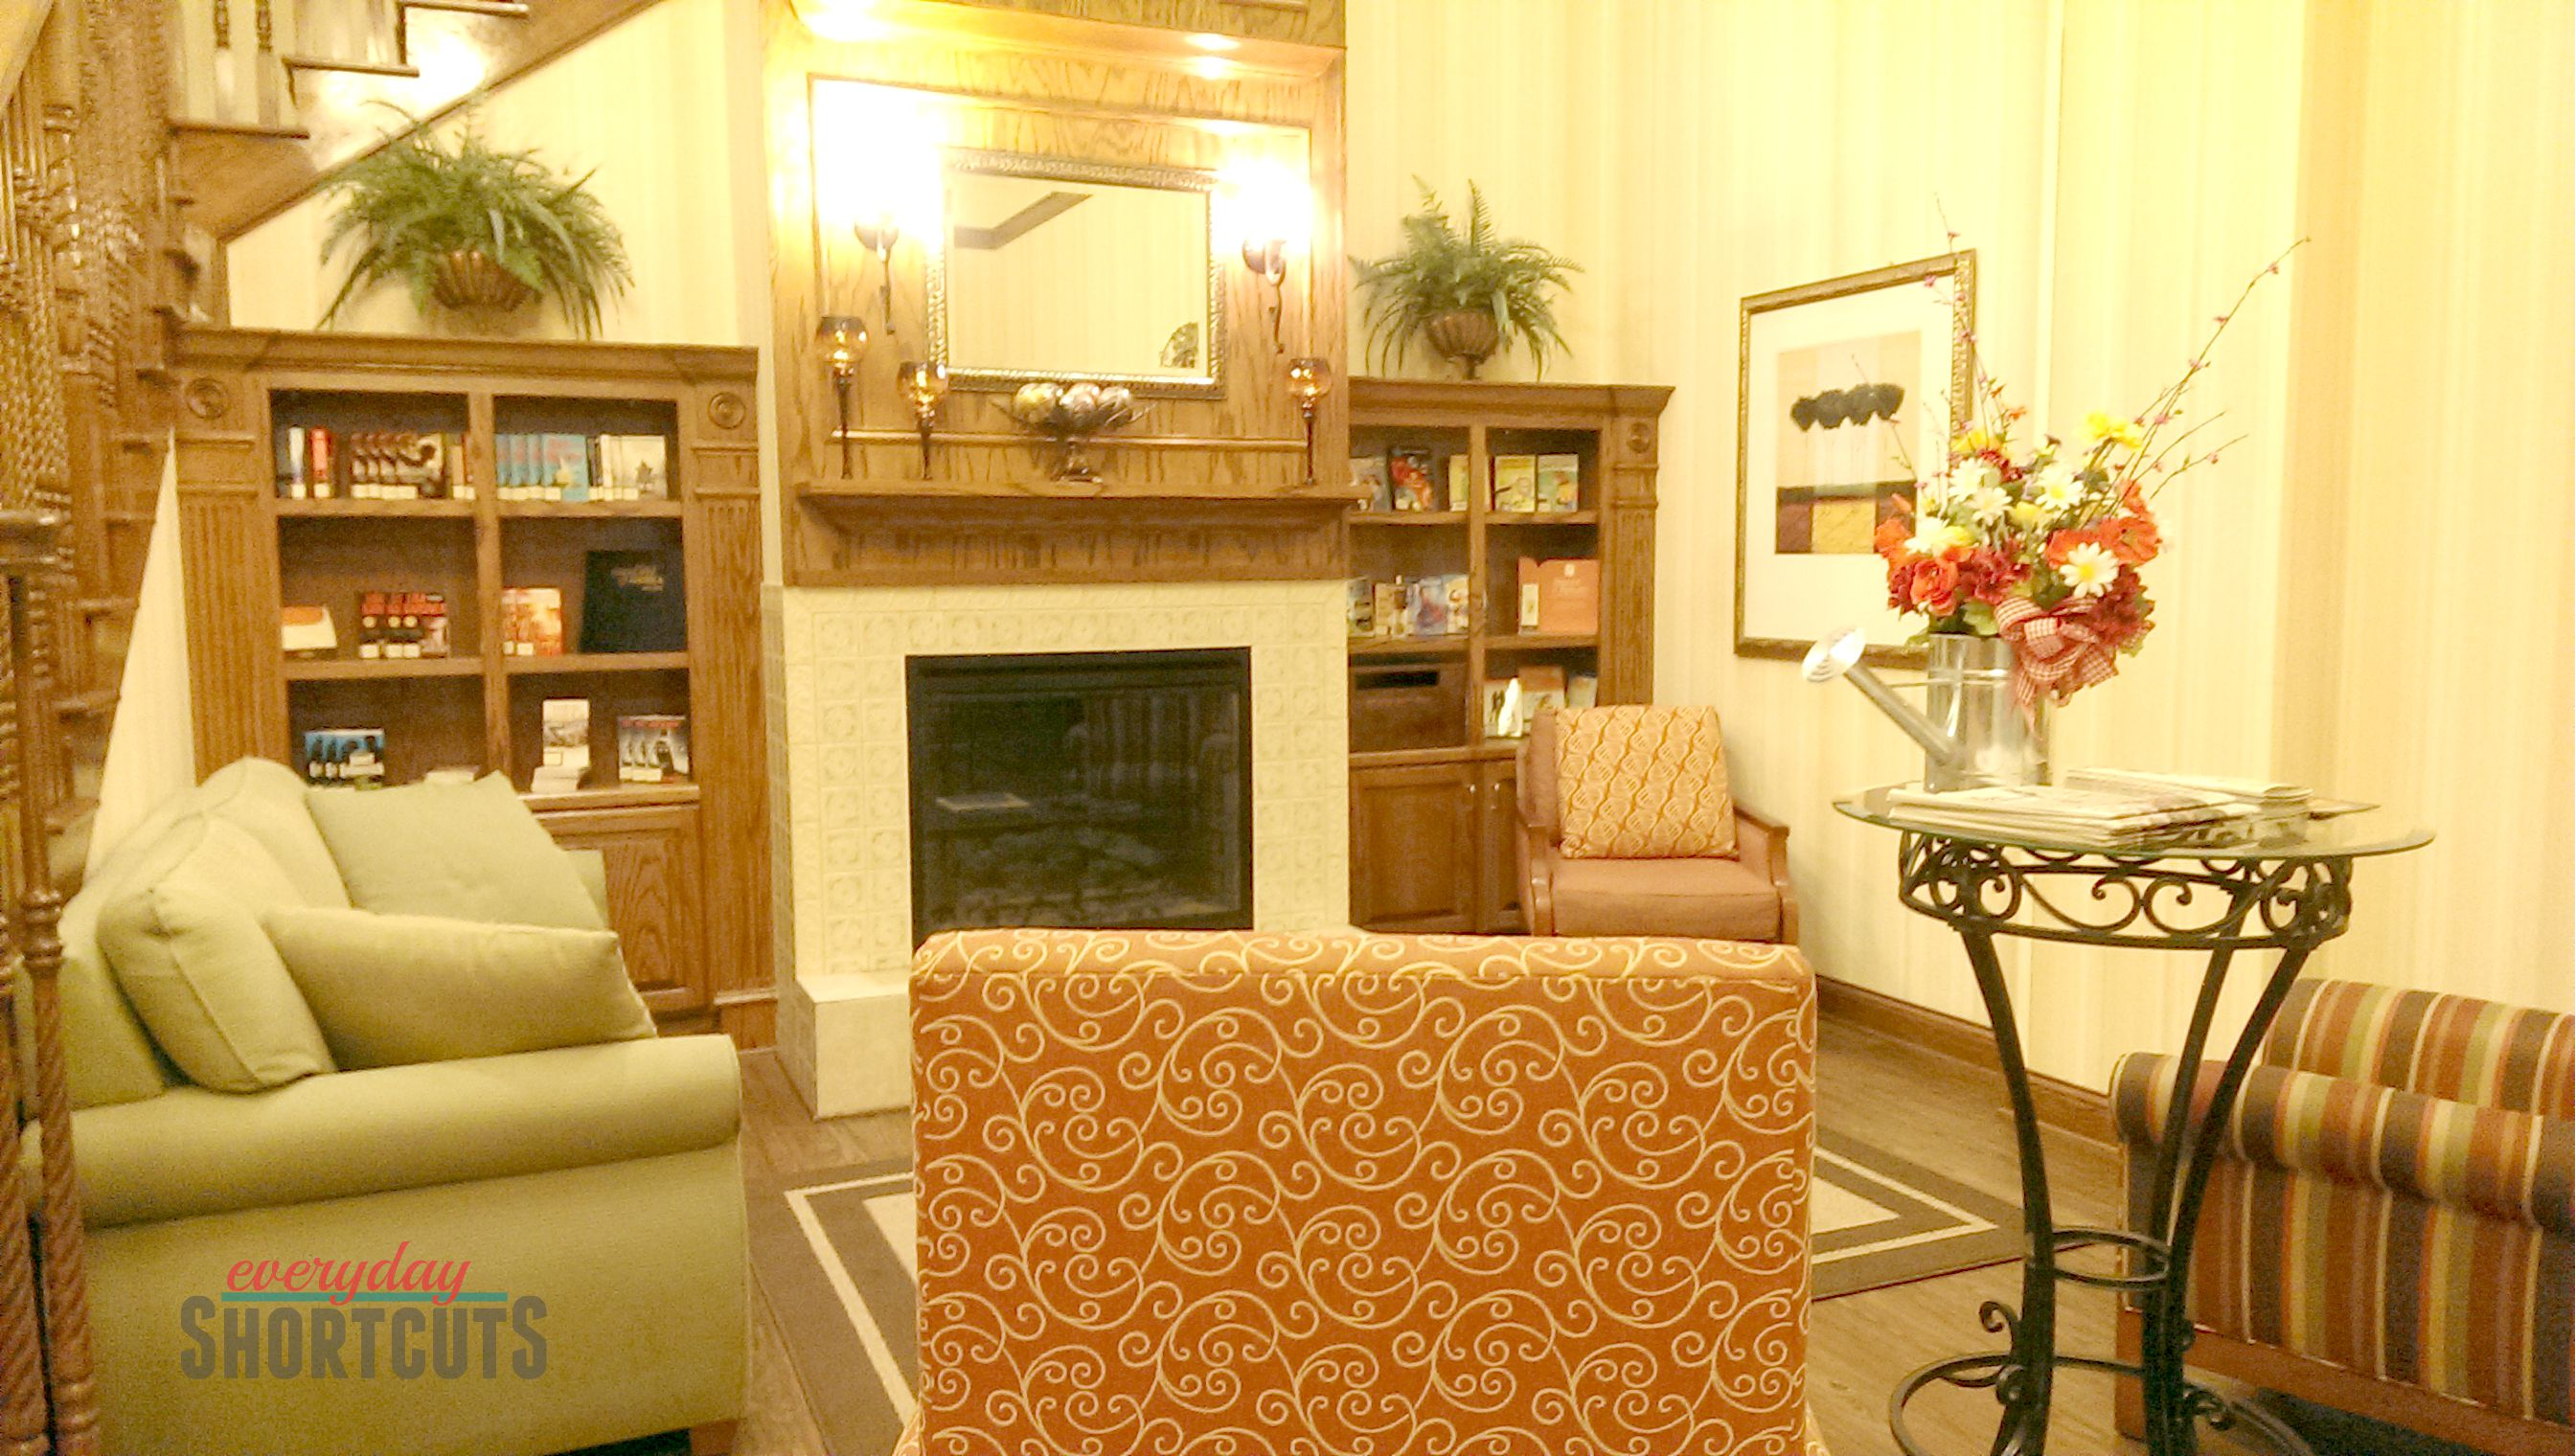 country-inn-suites-lobby